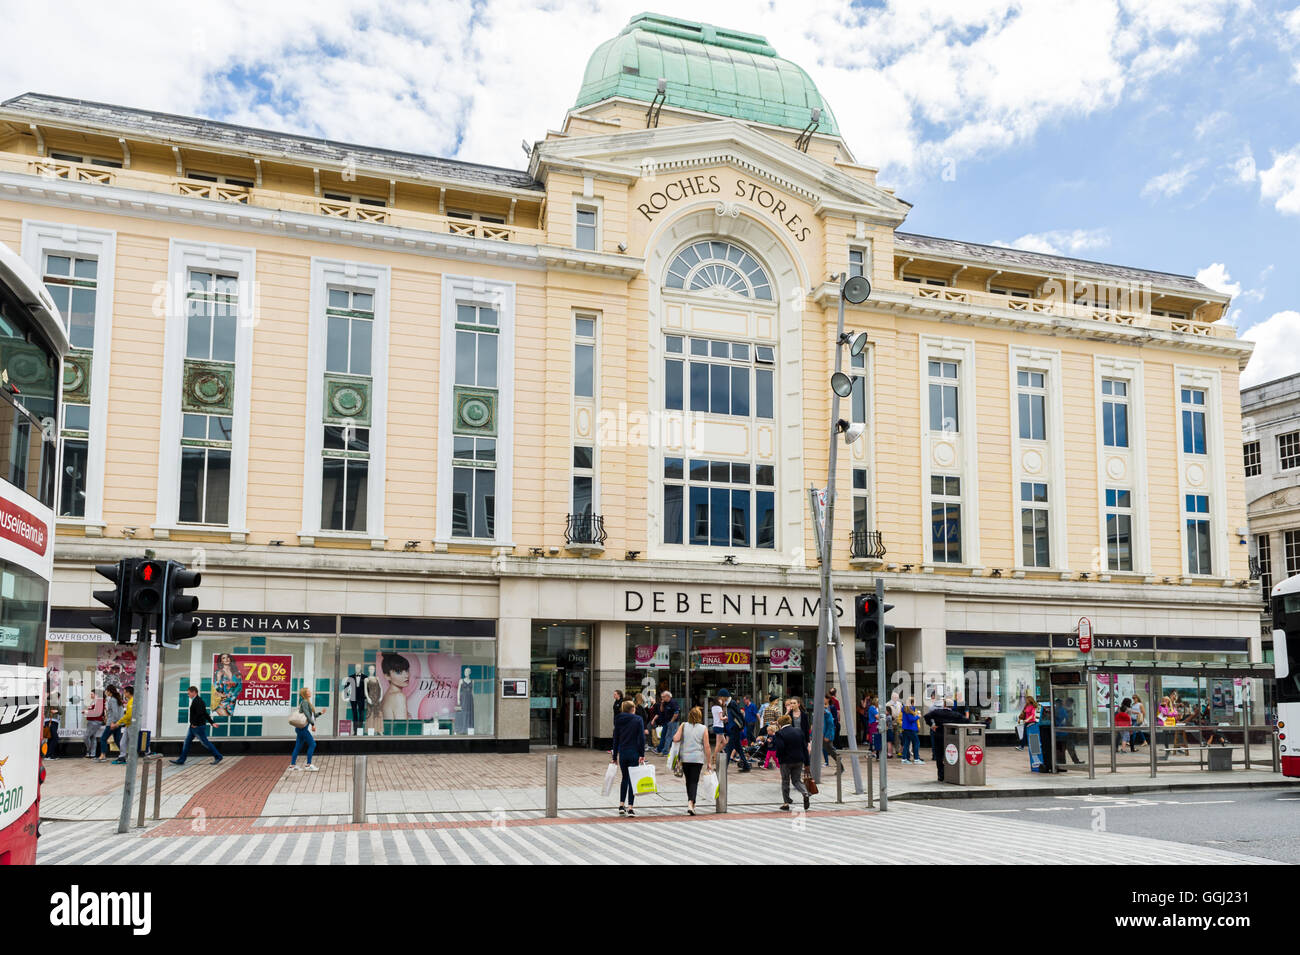 Debenhams Superstore on Patrick Street, Cork, Ireland. Stock Photo